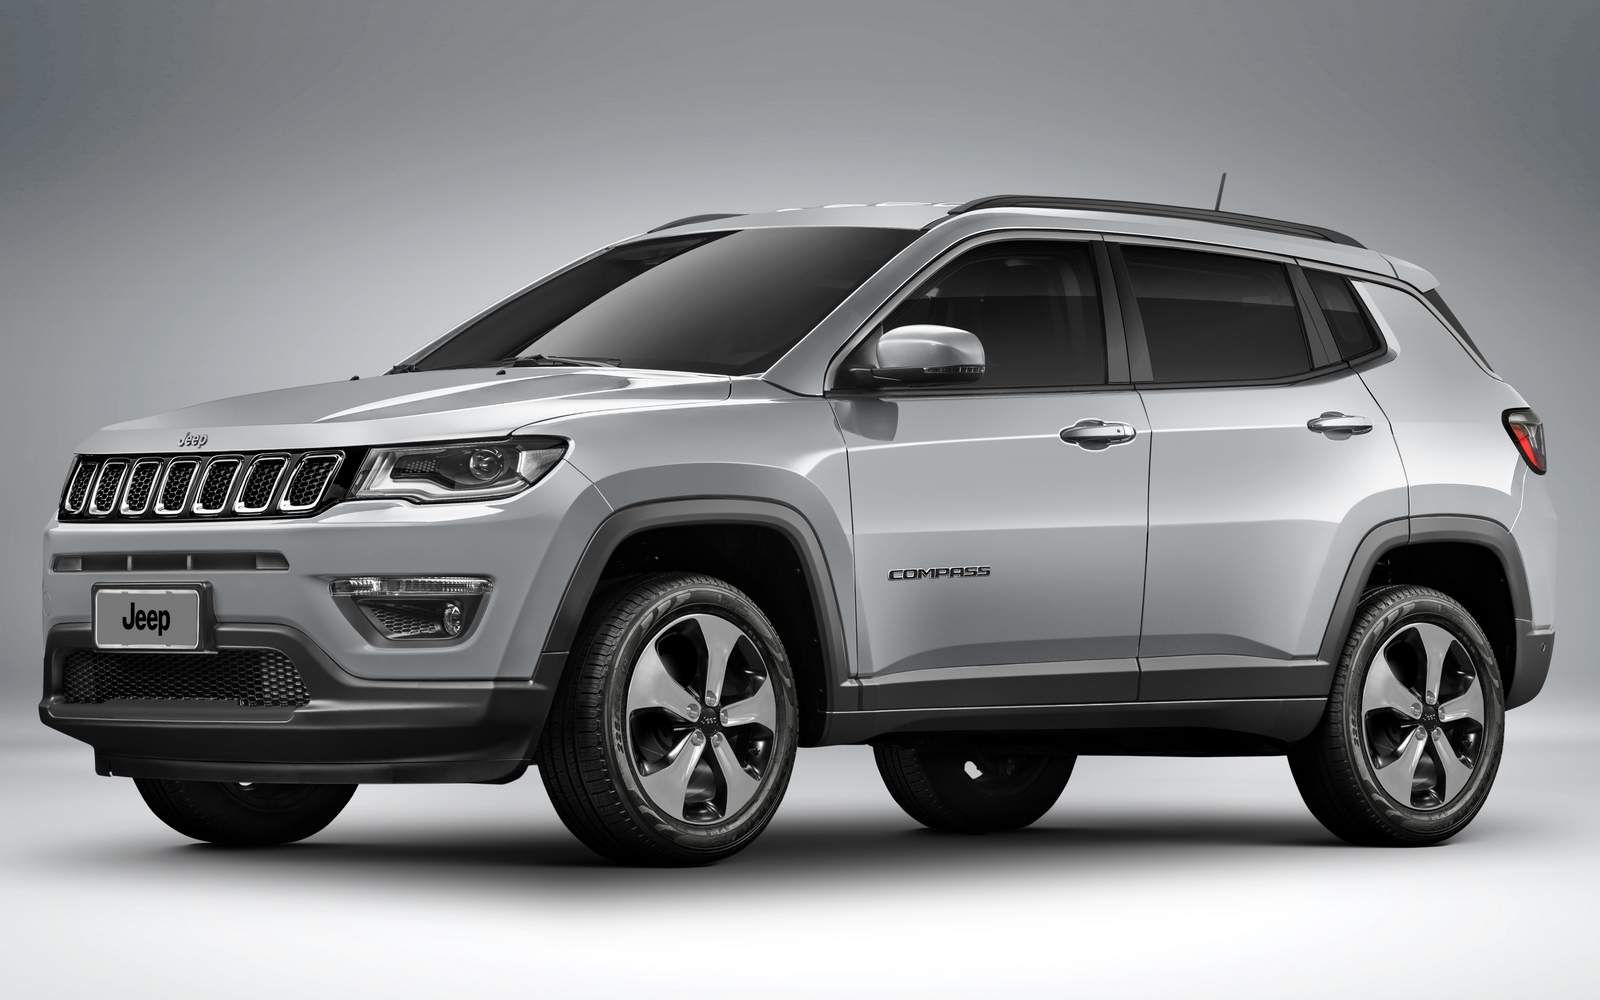 jeep compass flex longitude fotos pre os e consumo car blog br. Black Bedroom Furniture Sets. Home Design Ideas